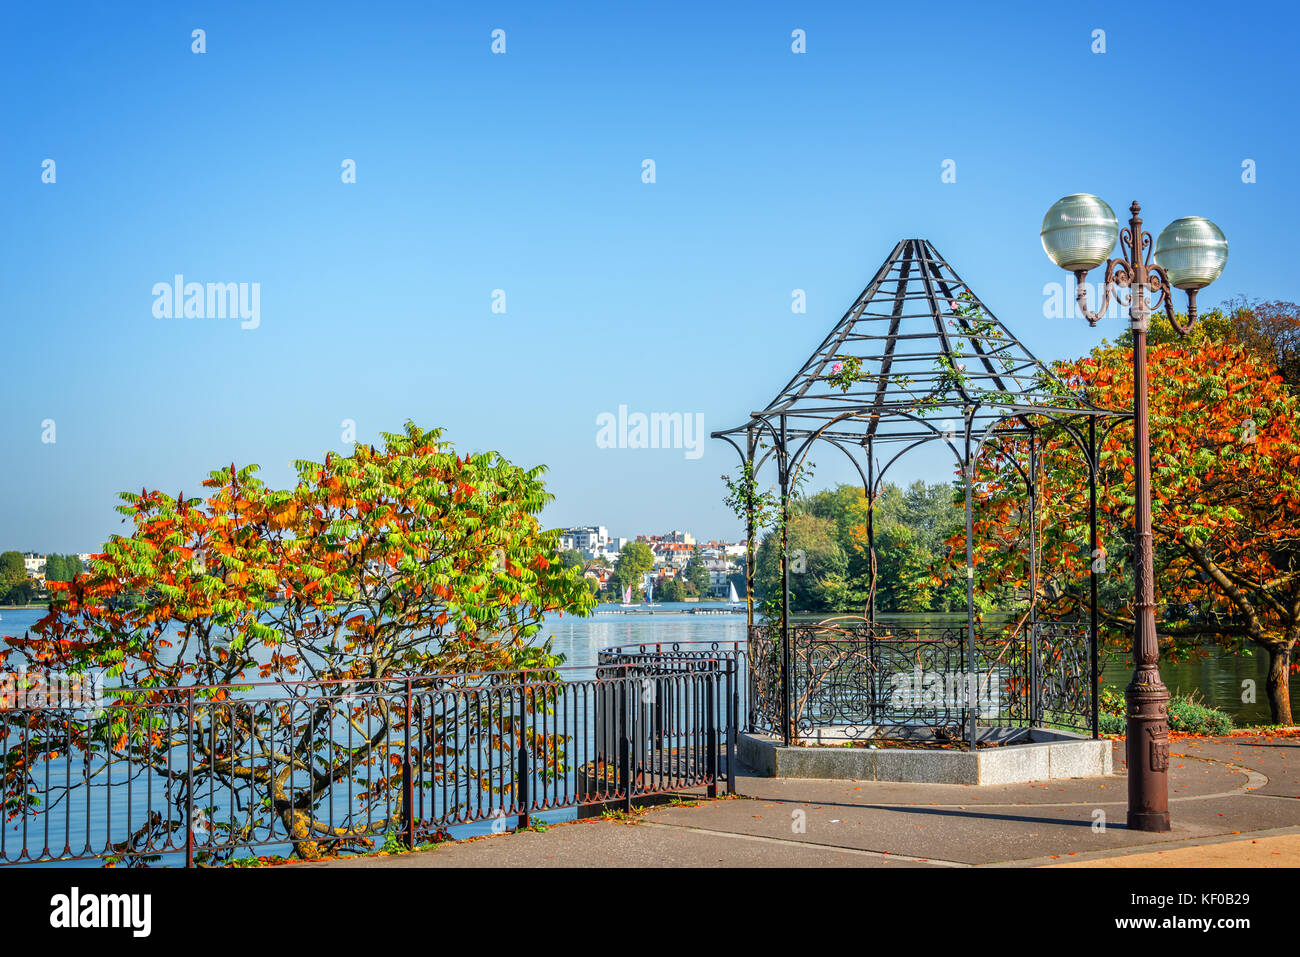 French week stock photos french week stock images alamy for Enghien les bains